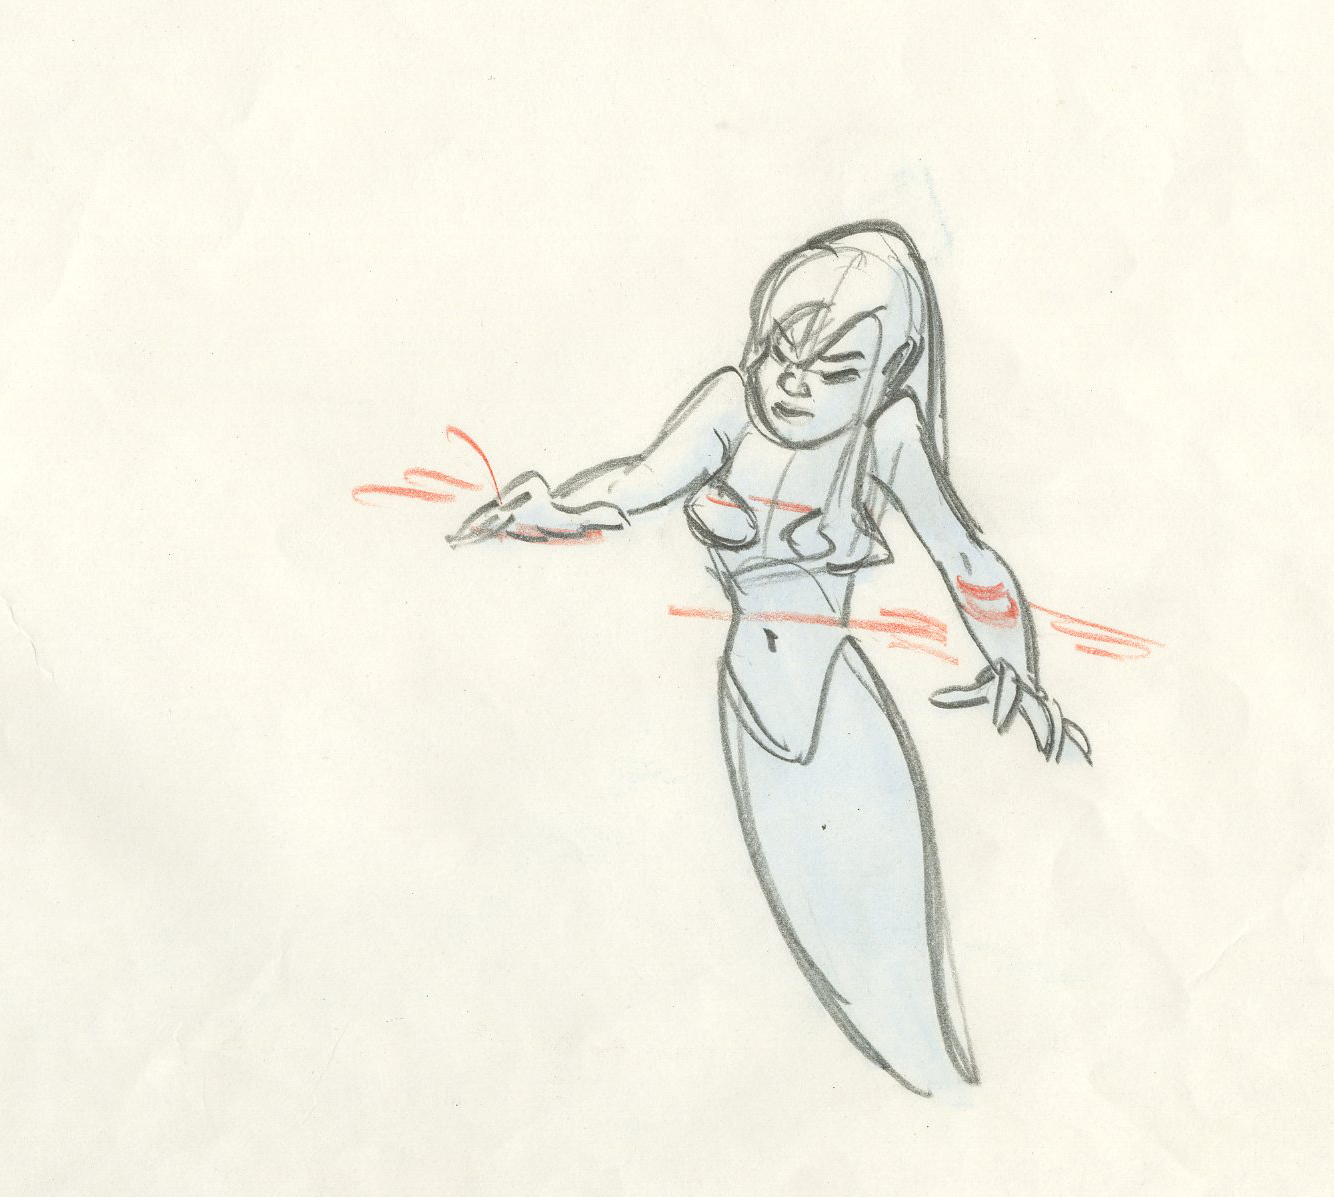 The Little Mermaid Production Drawing Id Decmermaid6746 Van